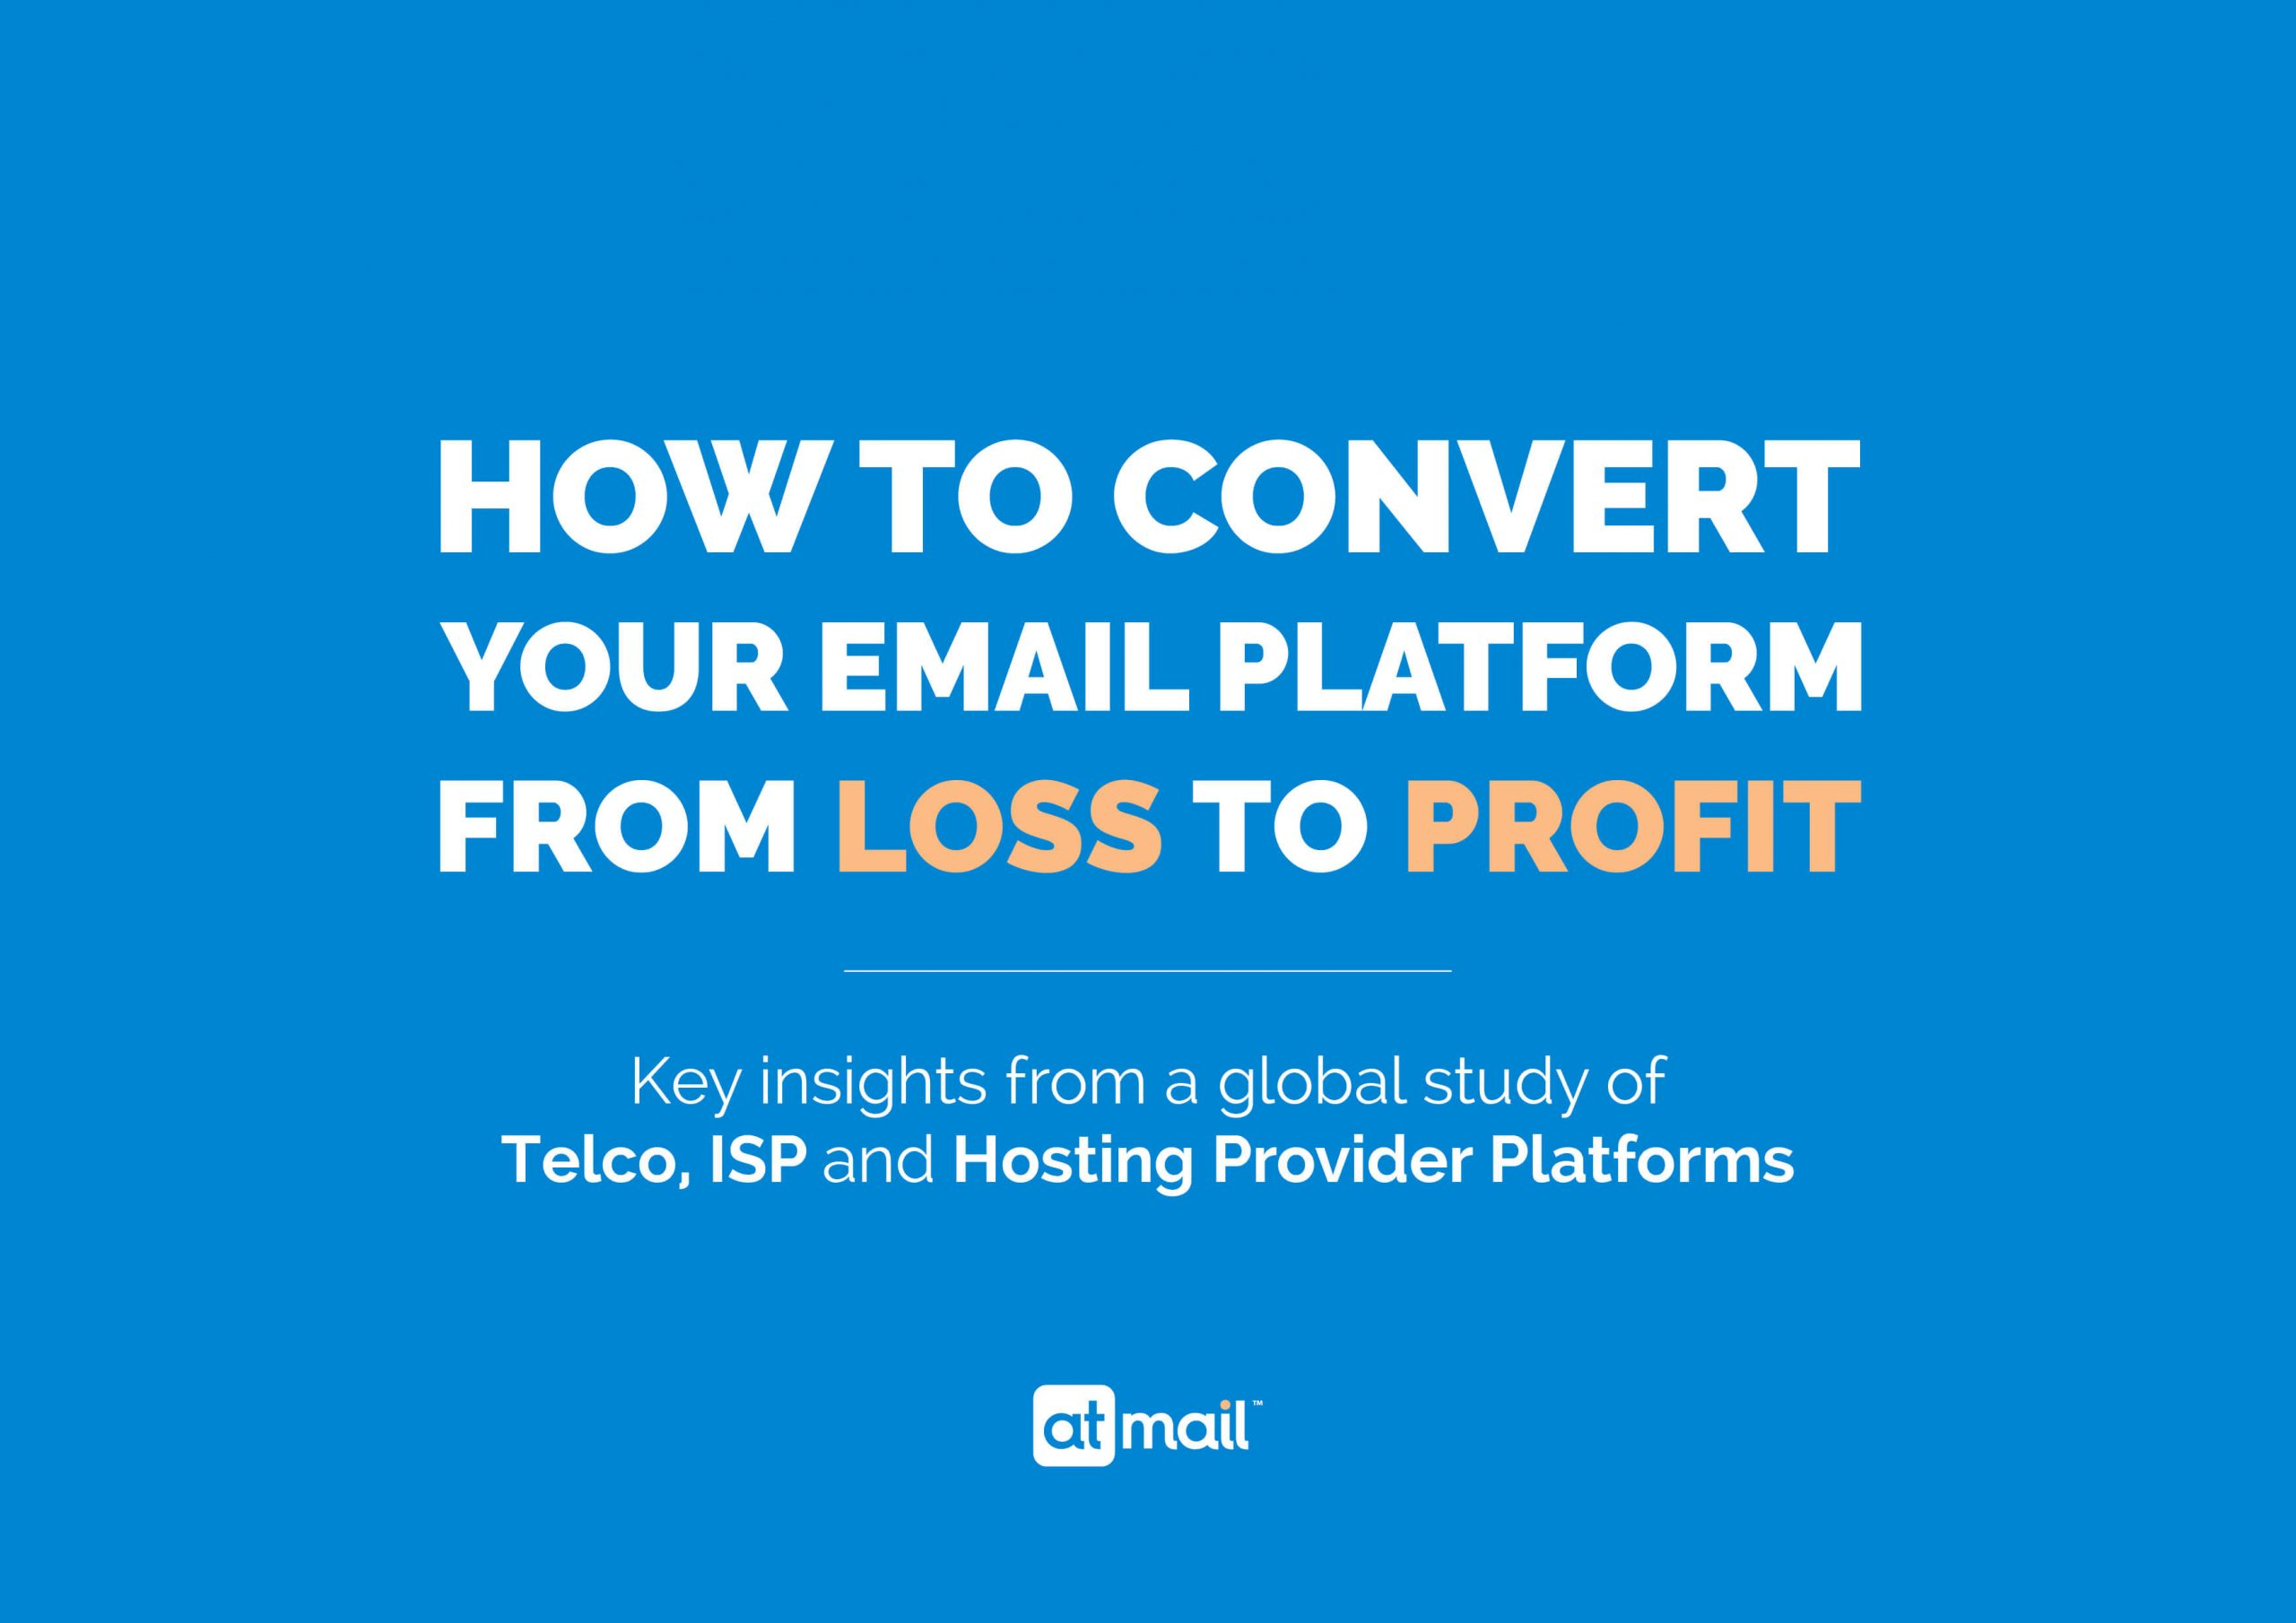 How to convert your email platform from loss to profit - atmail email hosting experts - global email pricing research study